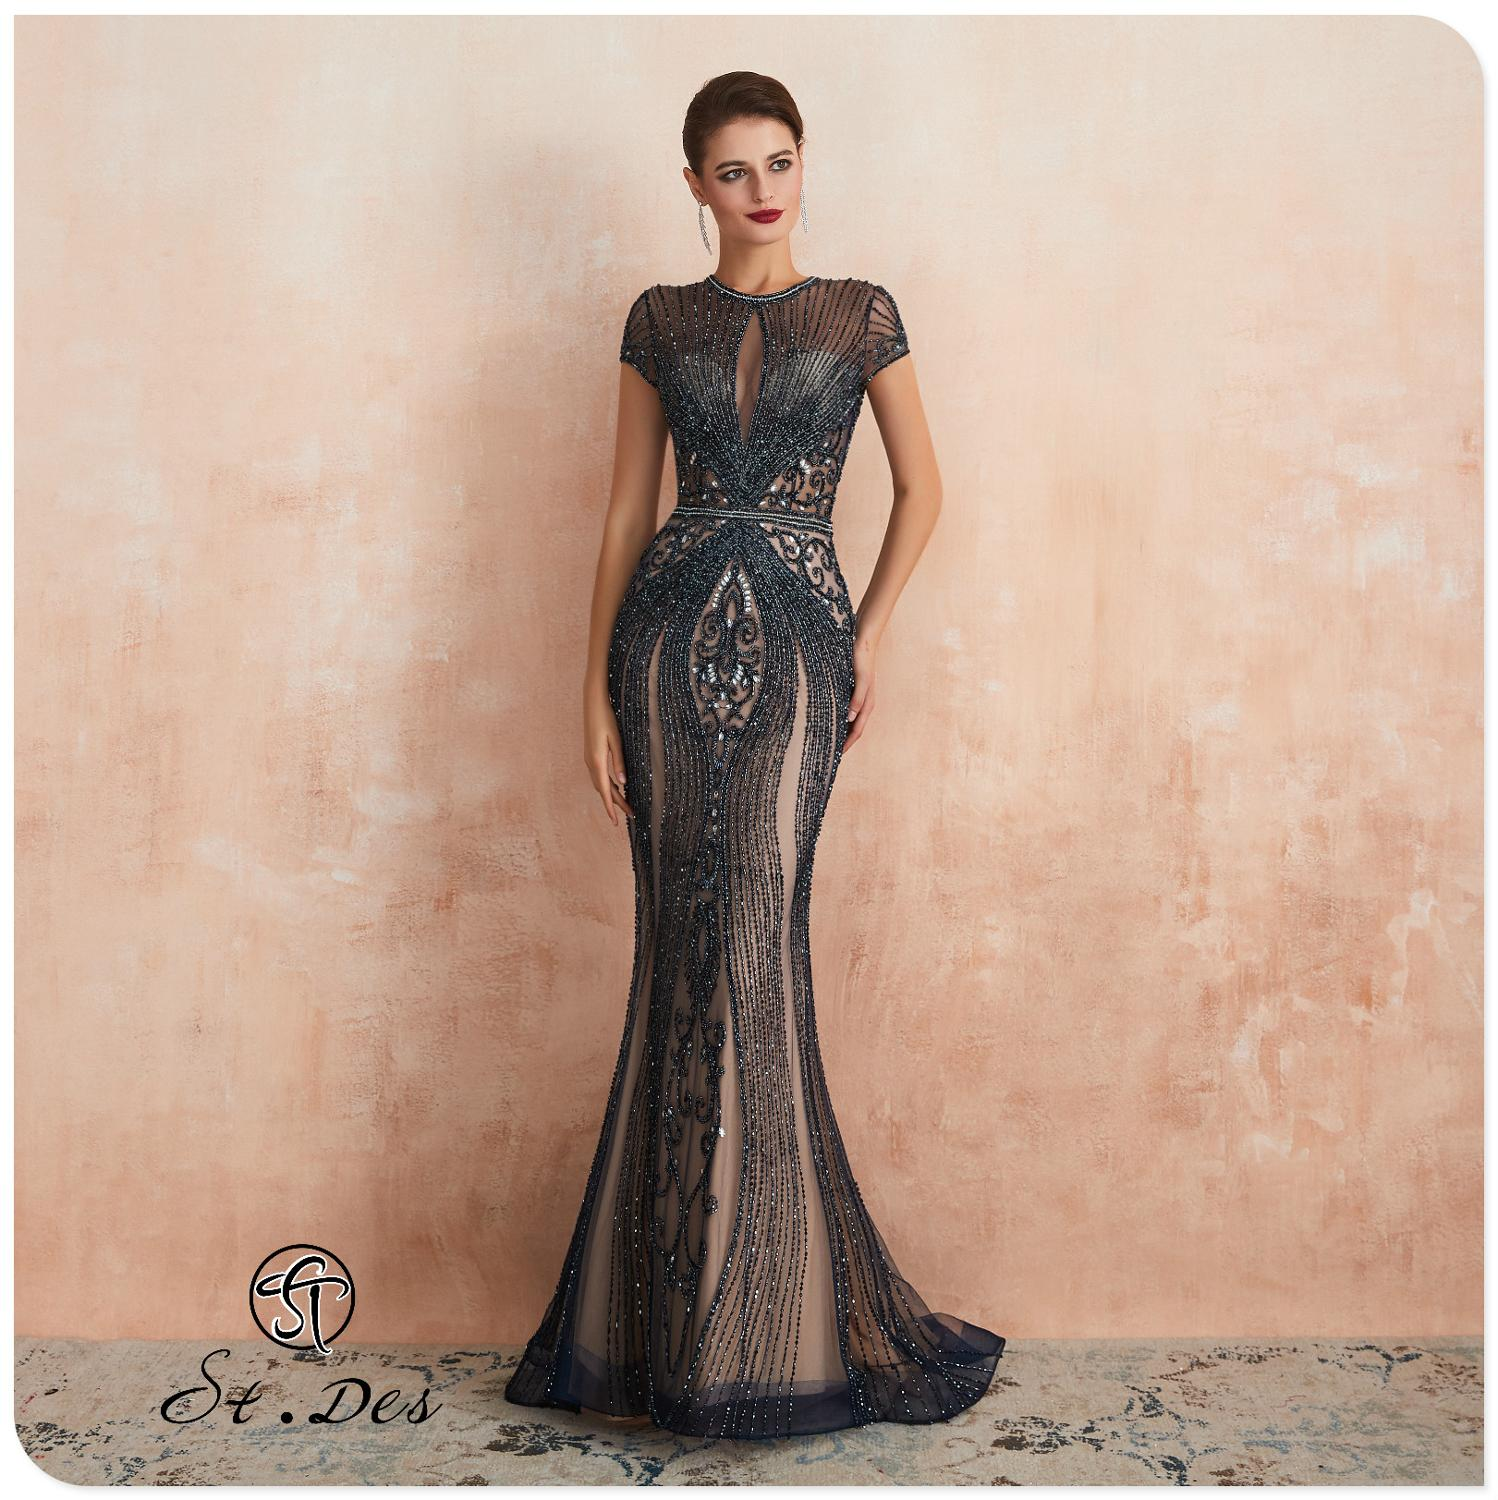 NEW 2020 St.Des Mermaid O-Neck Russian Champagne Grey Sequins Beading Designer Floor Length Evening Dress Party Dress Party Gown